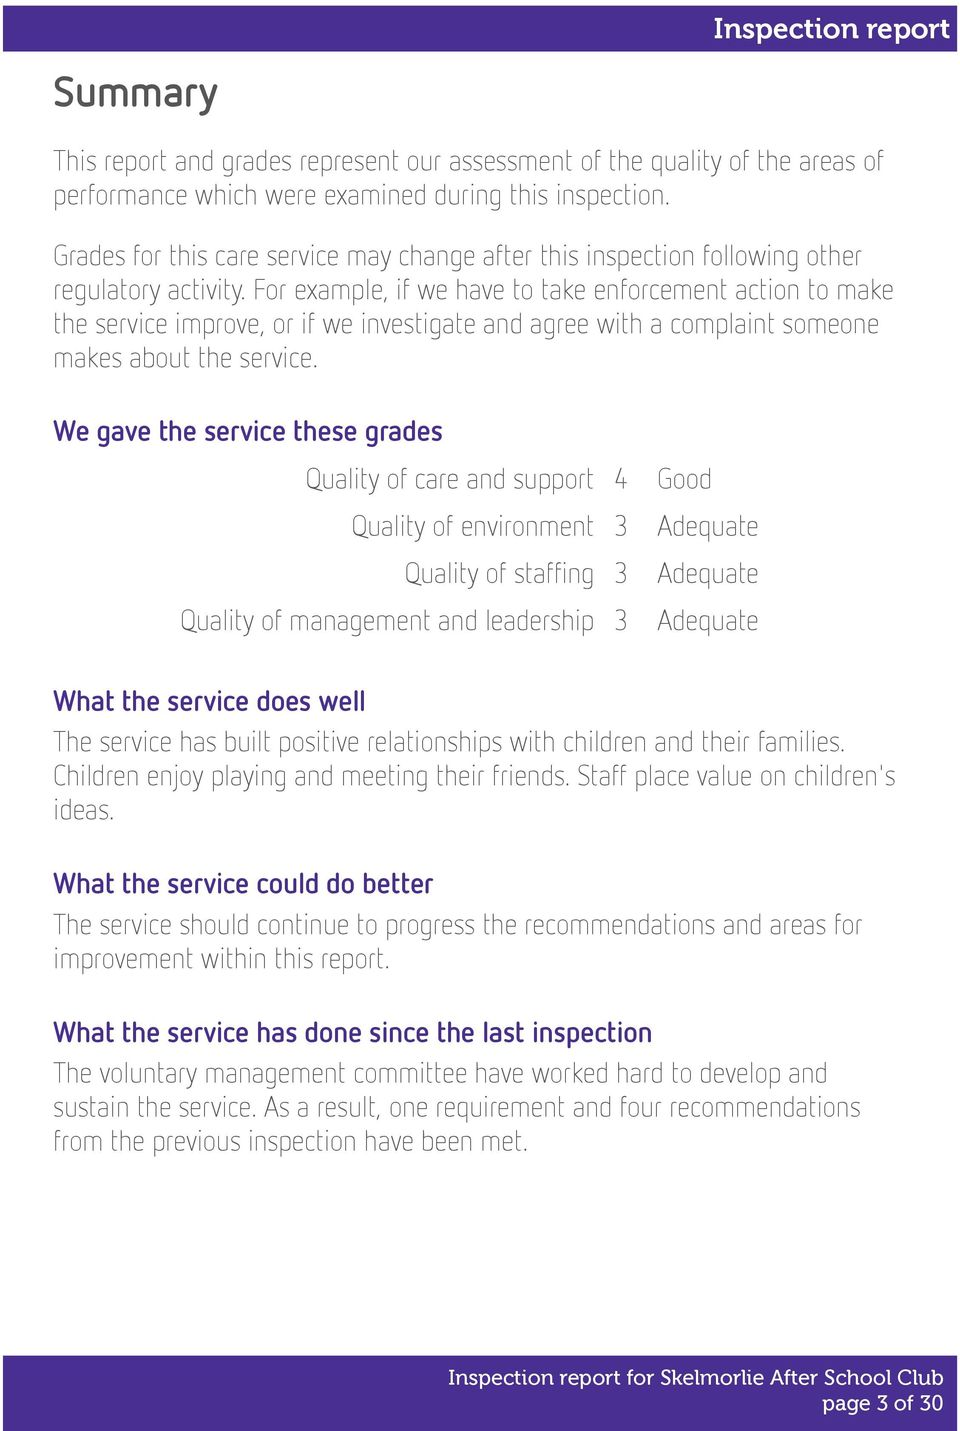 For example, if we have to take enforcement action to make the service improve, or if we investigate and agree with a complaint someone makes about the service.